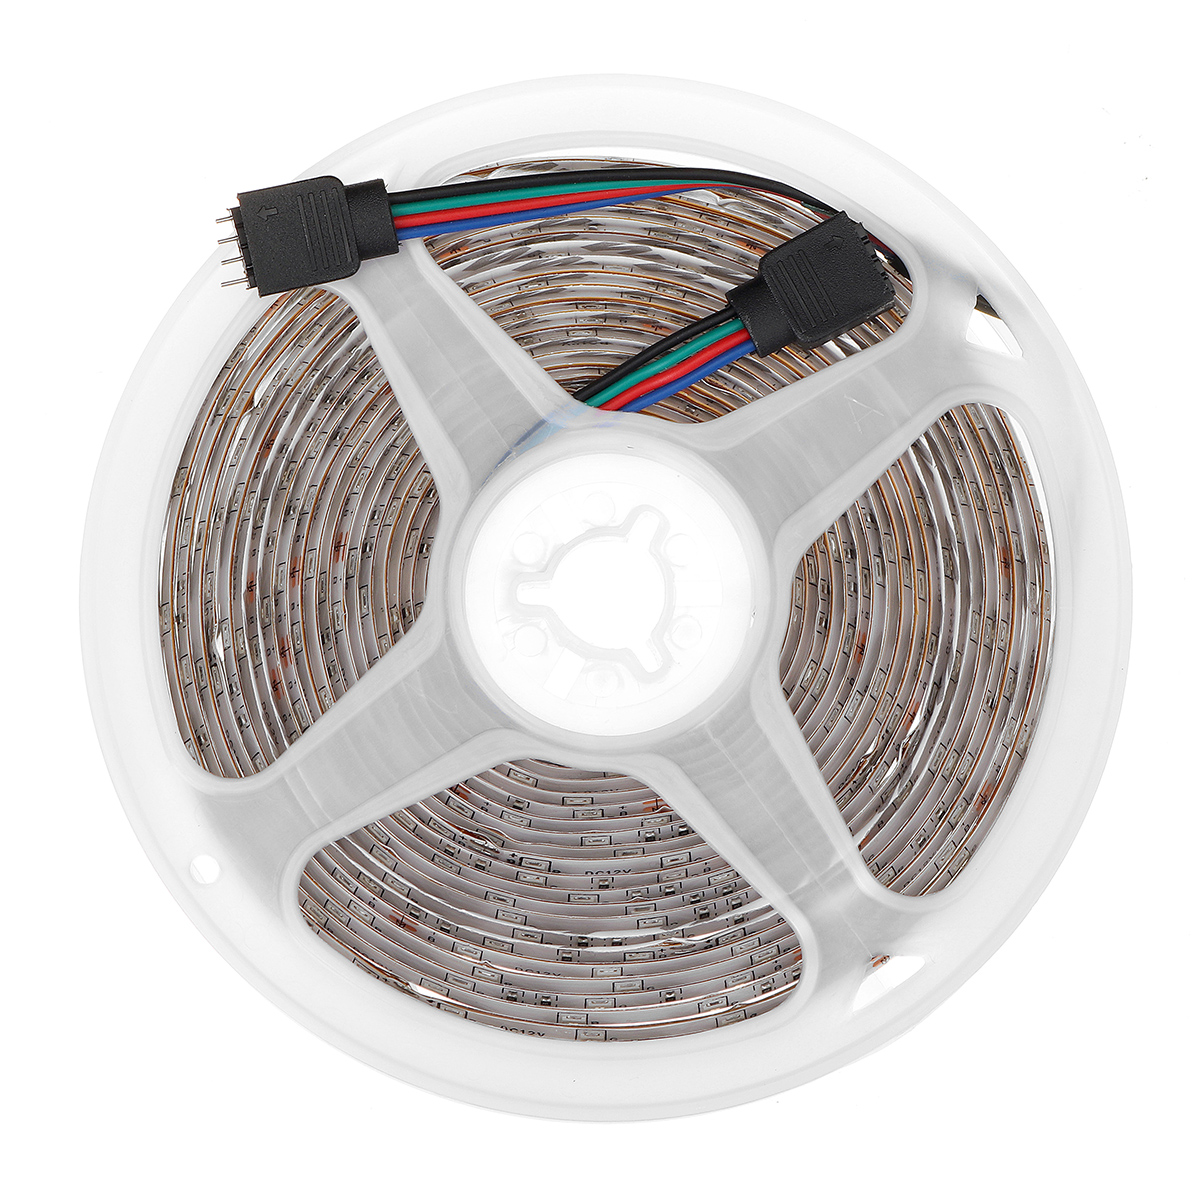 16FT 5M 2835 RGB 300LED Light Strip Waterproof/Non-waterproof Music Lamp with 20Keys Remote Control + Power Adapter